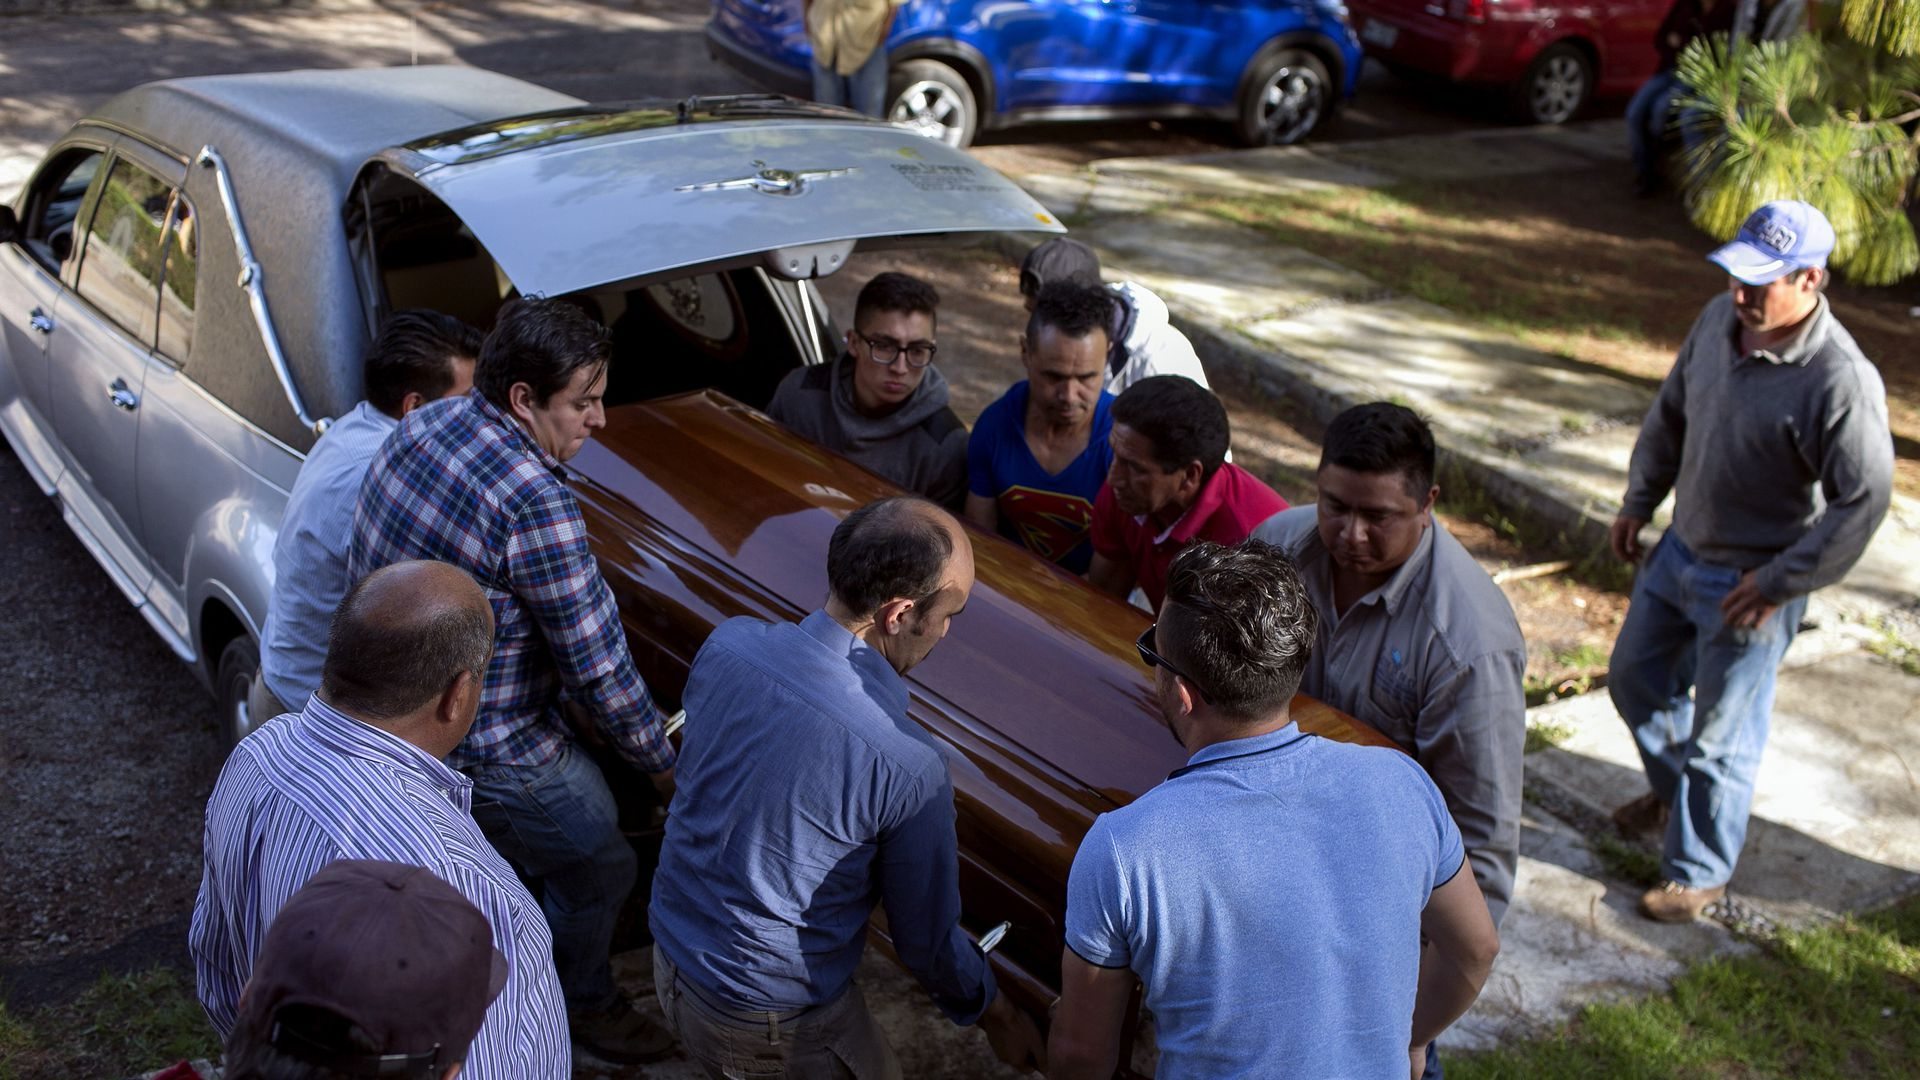 Coffin is pulled out of car trunk by group of people